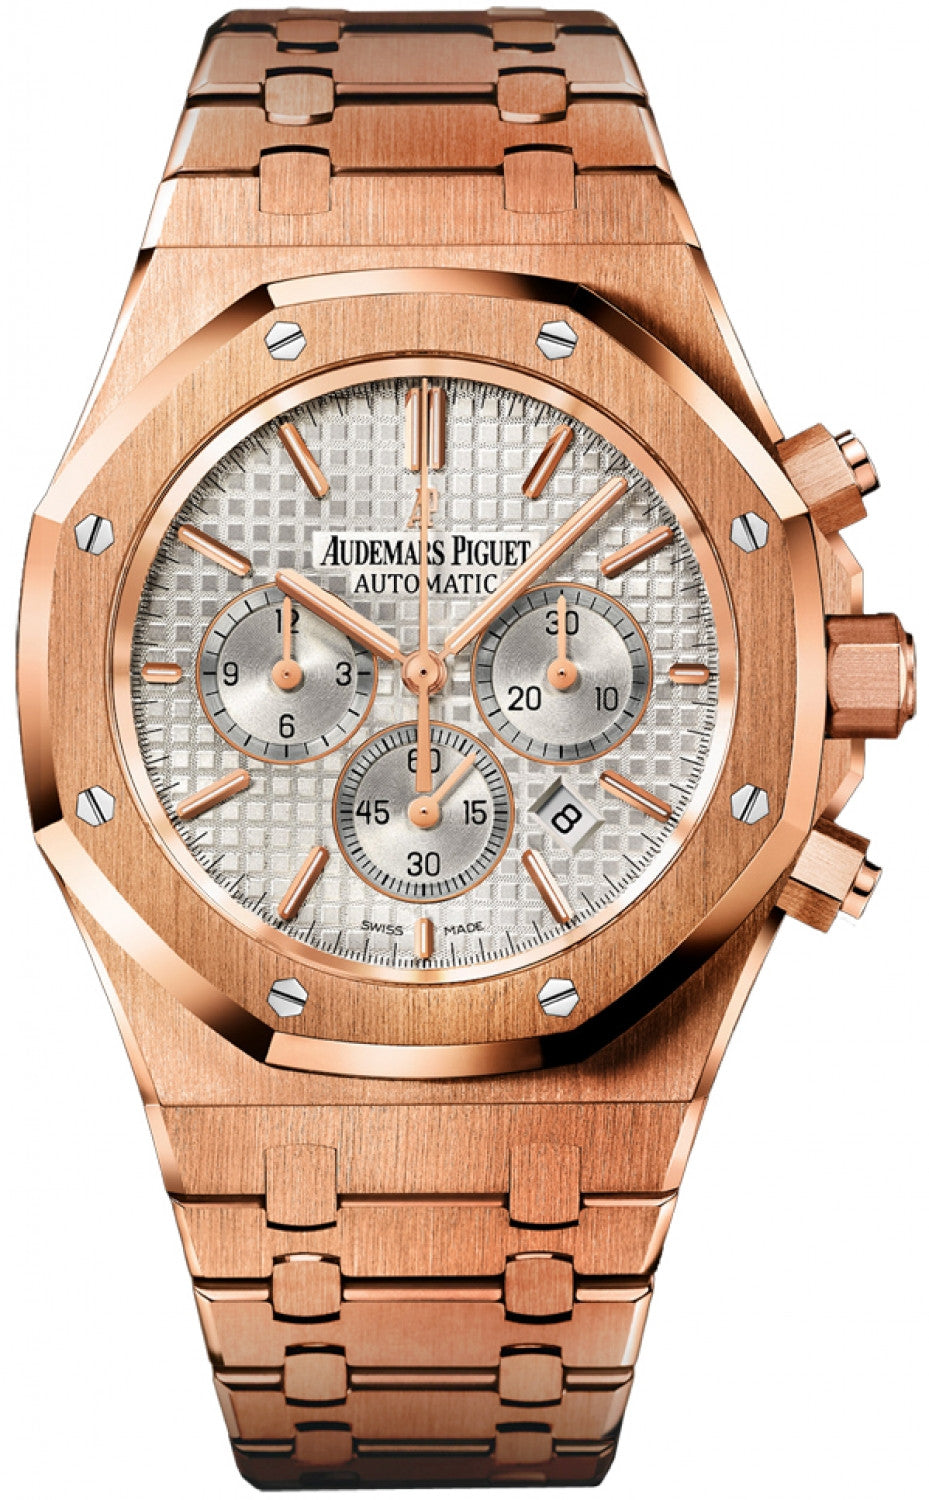 Audemars Piguet 26320or.oo.1220or.02